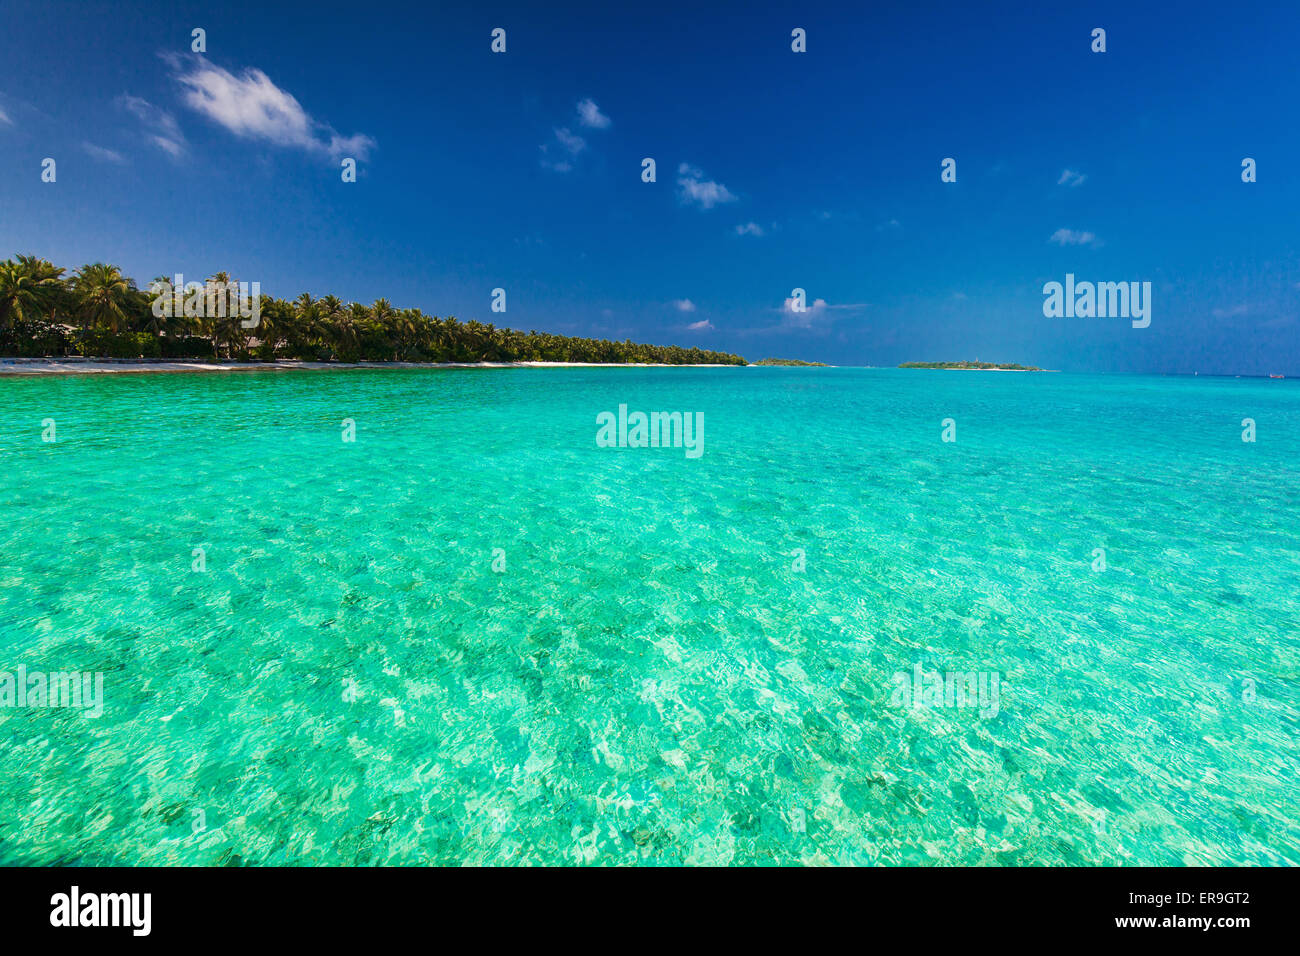 Tropical island with sandy beach, clear sky and pristine water - Stock Image